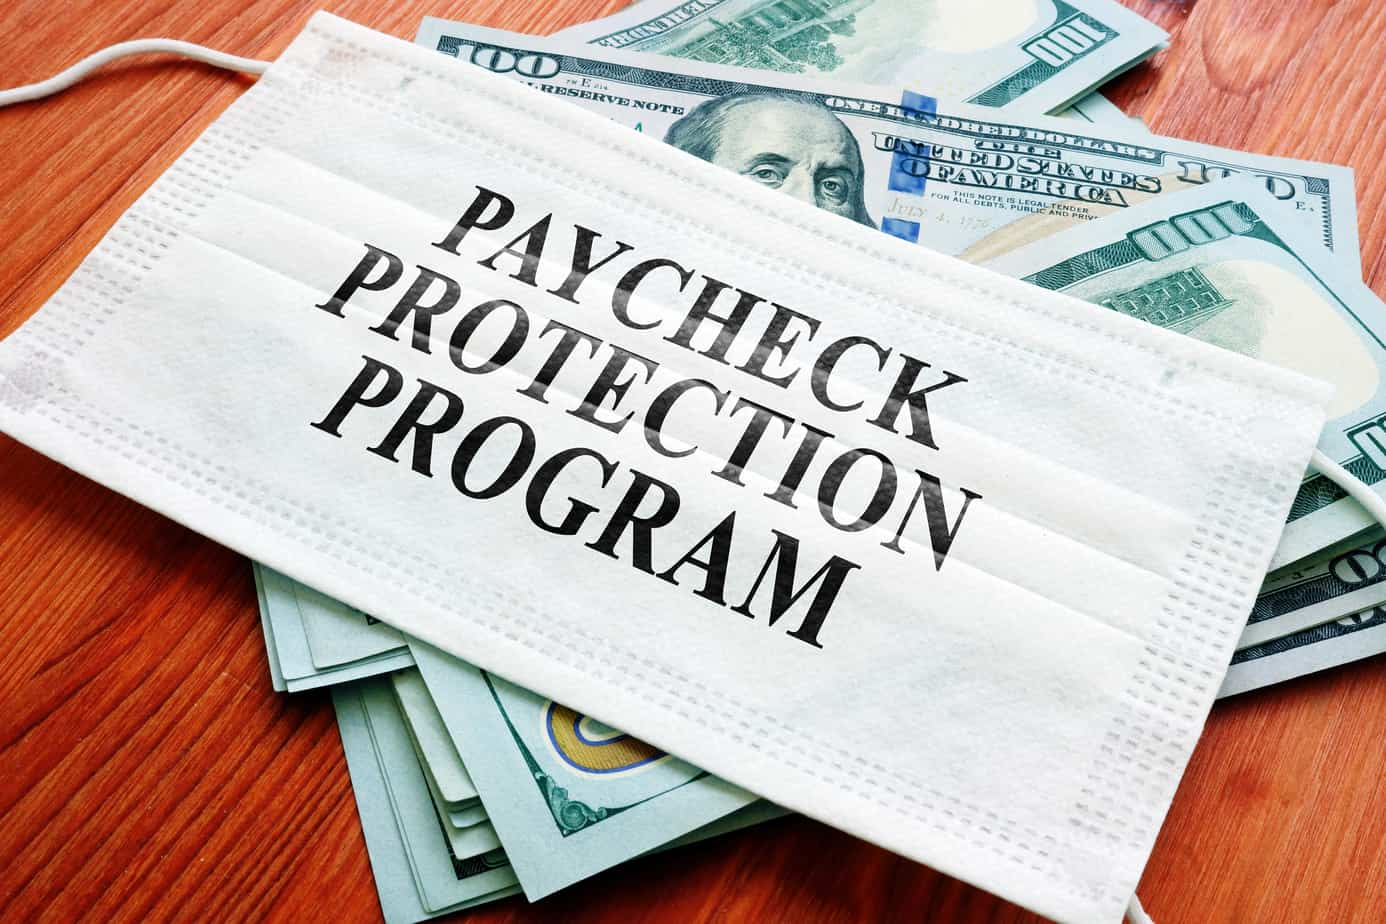 ppp-paycheck-protection-program-as-sba-loan-written-on-the-mask-181147250